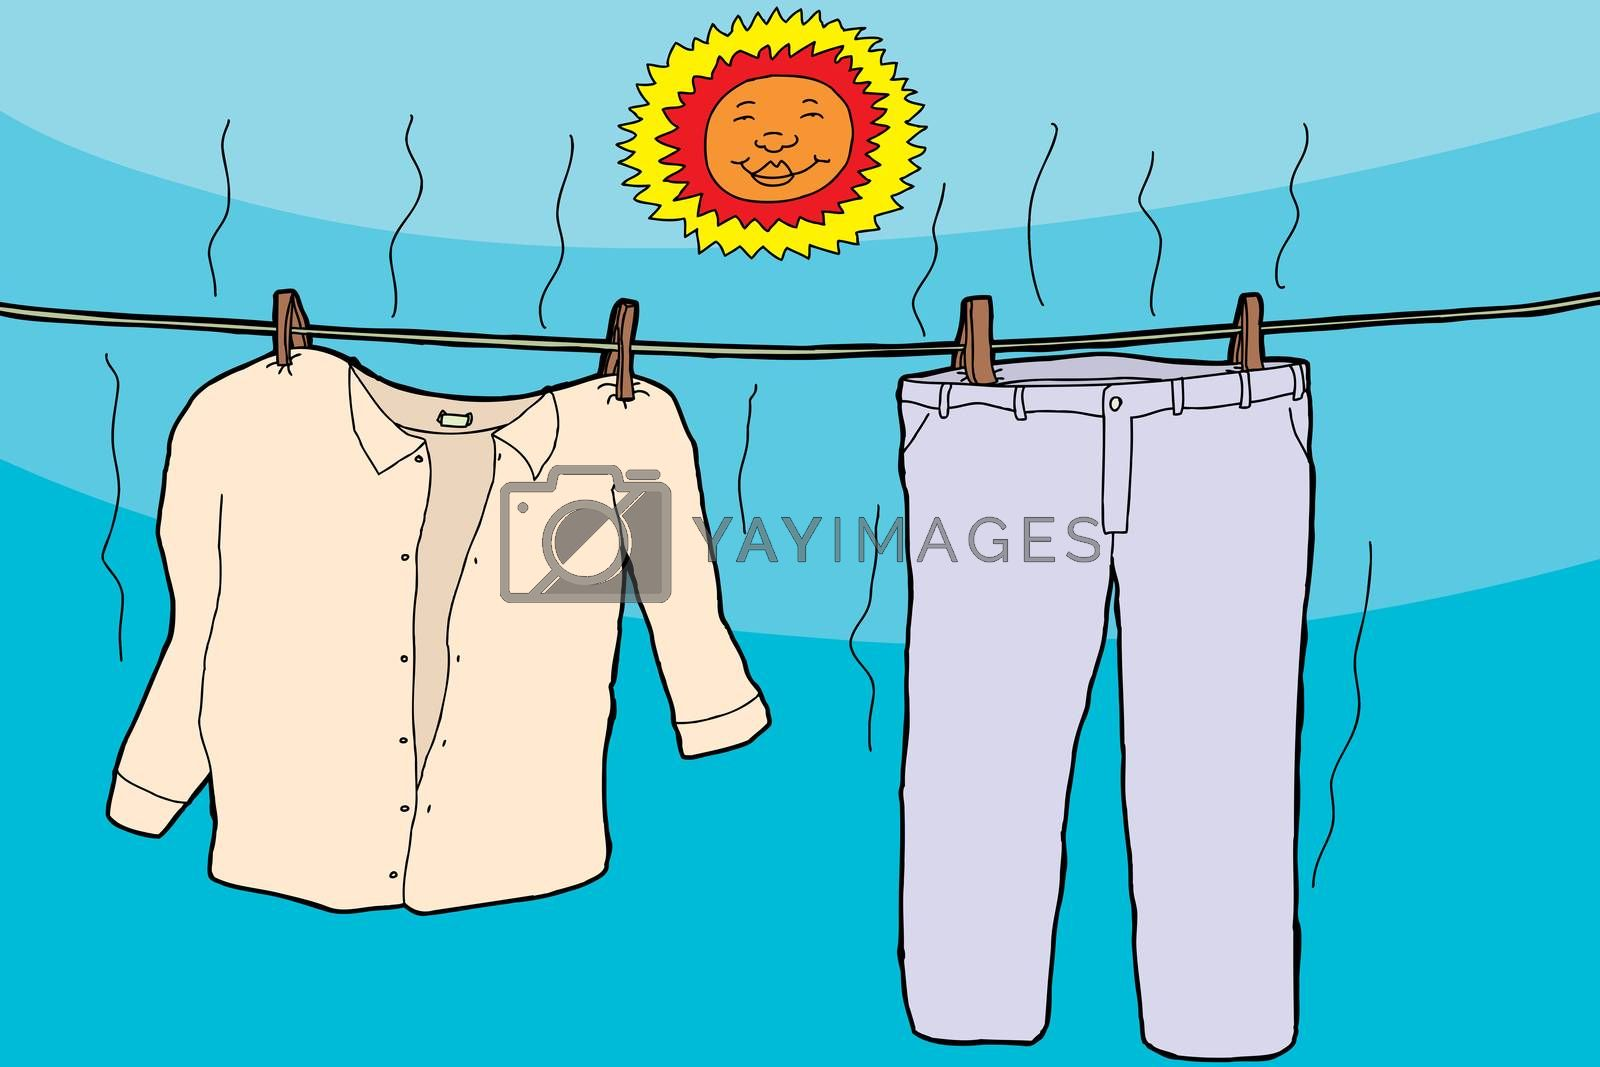 Royalty free image of Clothes Drying in Sun by TheBlackRhino